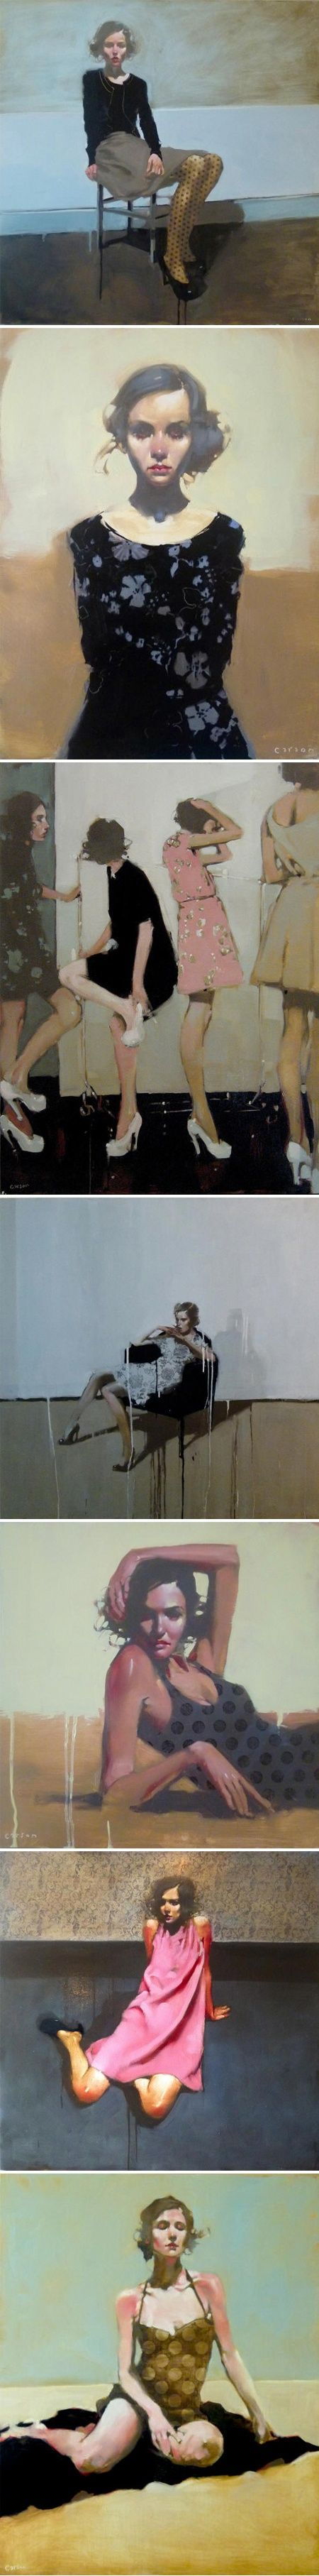 American painter Michael Carson. Influenced by the paintings of Toulouise Loutrec, John Singer Sargent, Norman Rockwell, Malcolm Liepke, and Milt Kobayashi, Michael Carson is primarily a figurative Artist who likes to tell a story.